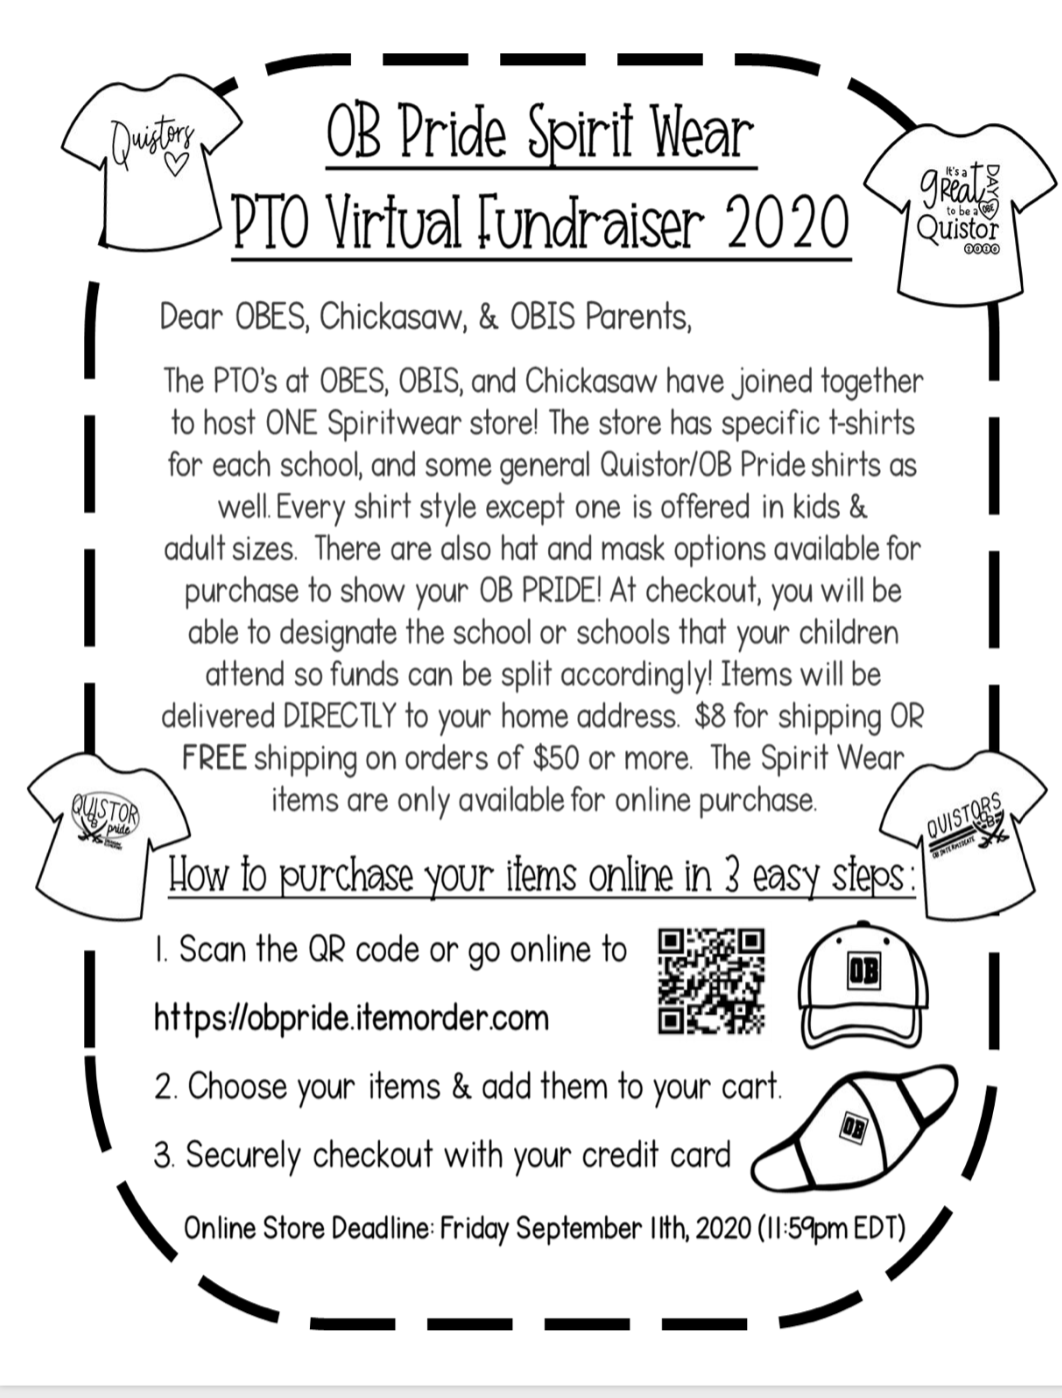 Please Support Our PTO's Virtual Fundraiser 2020!